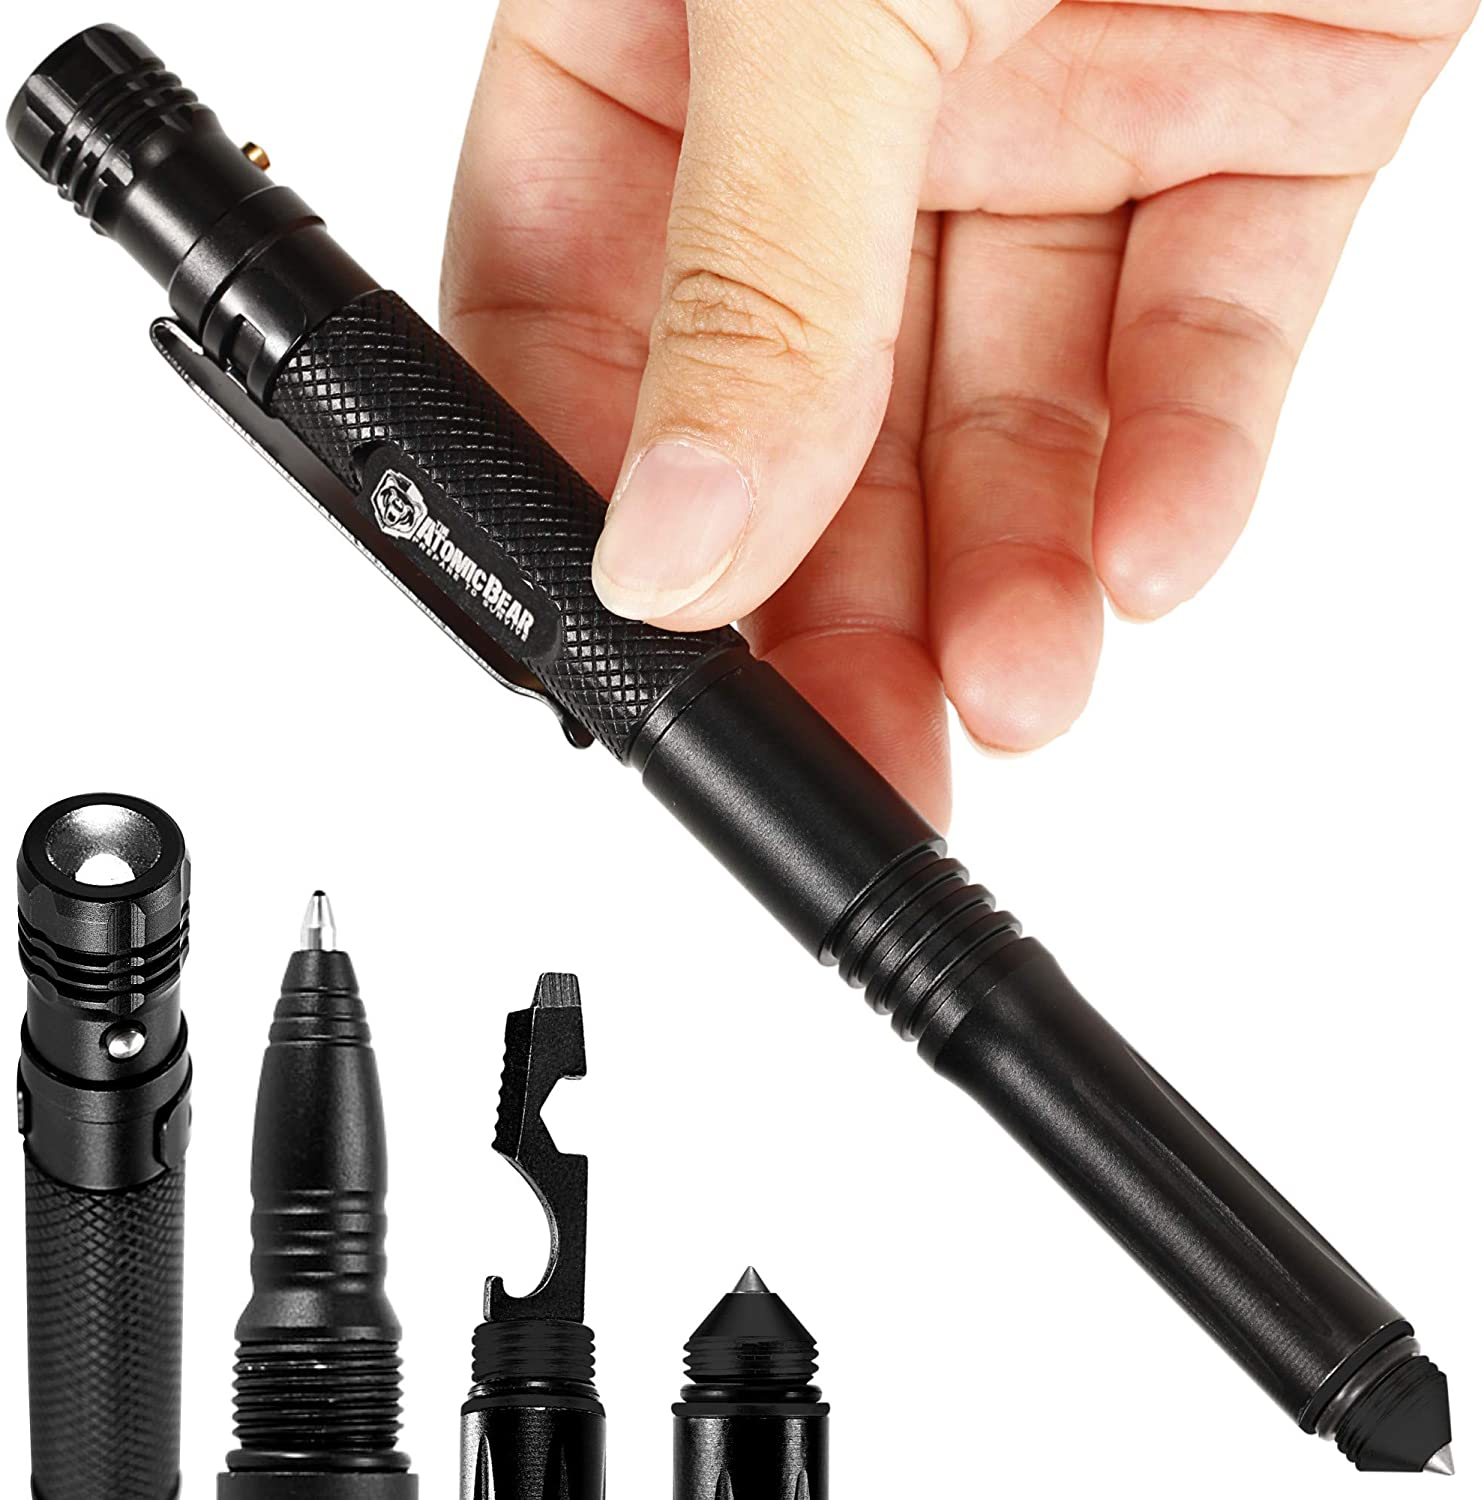 MTP-6 Tactical Pen – Multitool - Self Defense for Women & Men